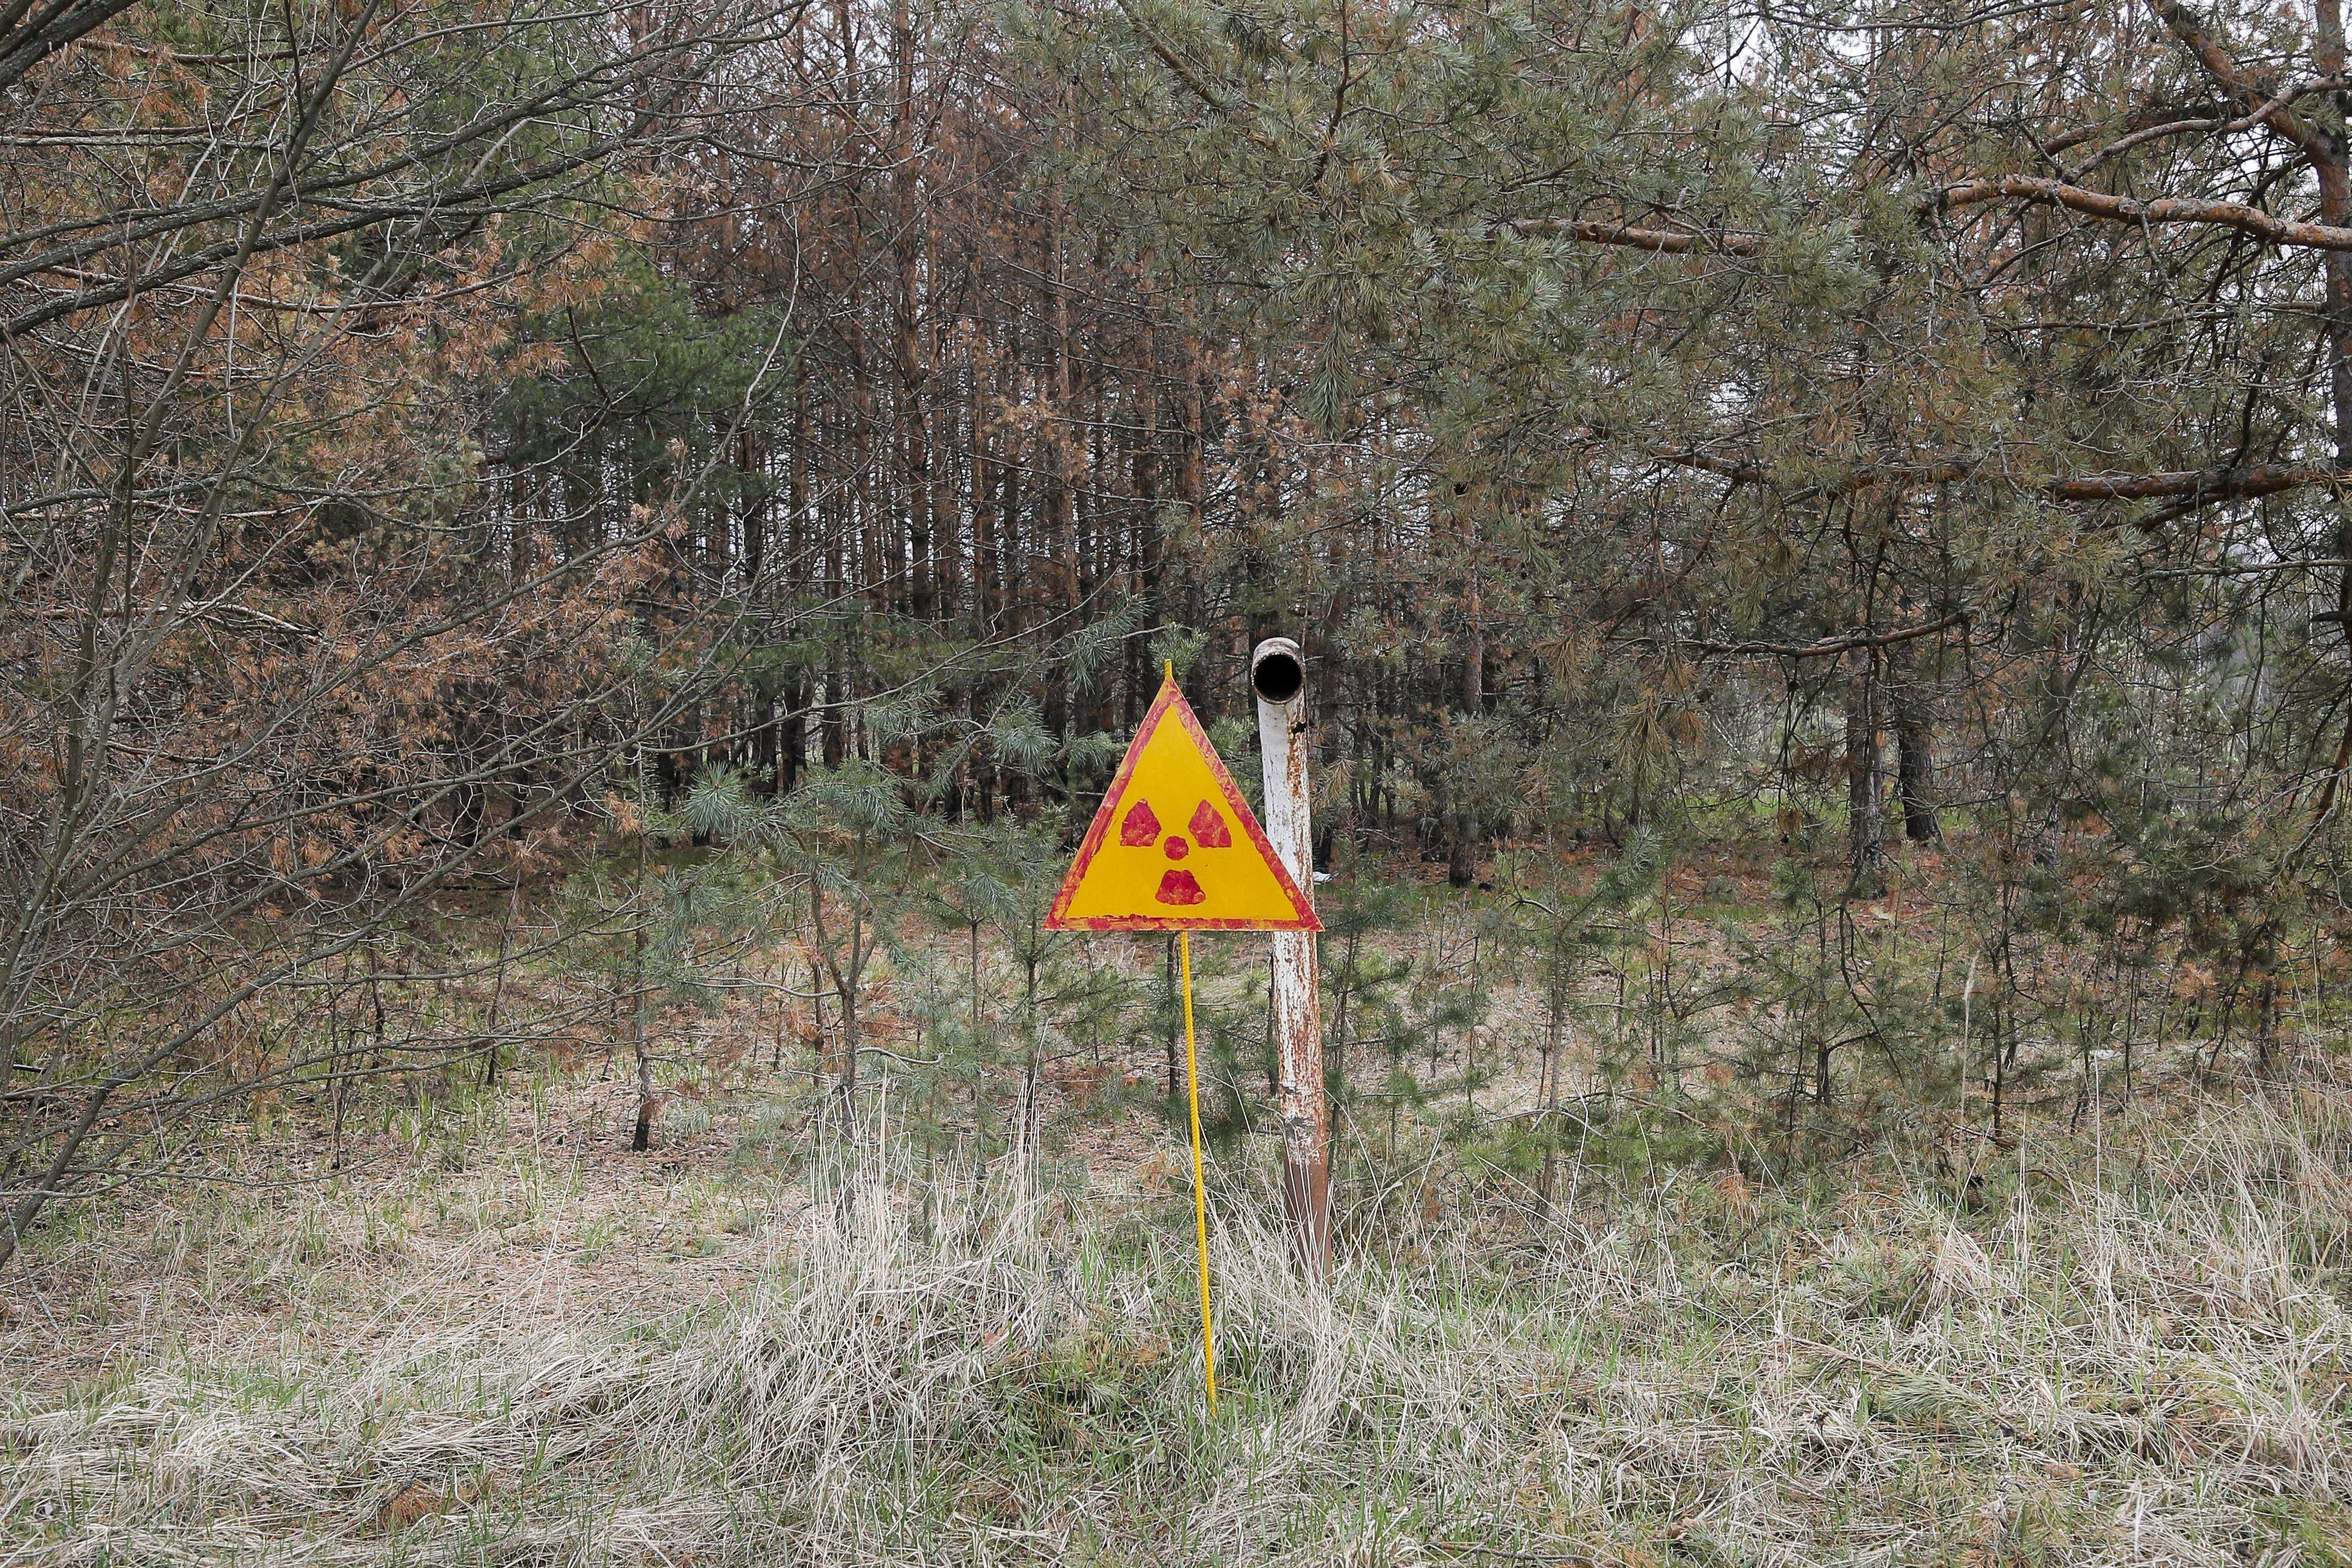 In this photo taken Wednesday, April 5, 2017, a radioactivity sign stands in the ground, outside Chernobyl, Ukraine. April 26 marks the 31st anniversary of the Chernobyl nuclear disaster. A reactor at the Chernobyl nuclear power plant exploded on April 26, 1986, leading to an explosion and the subsequent fire spewed a radioactive plume over much of northern Europe. THE ASSOCIATED PRESS